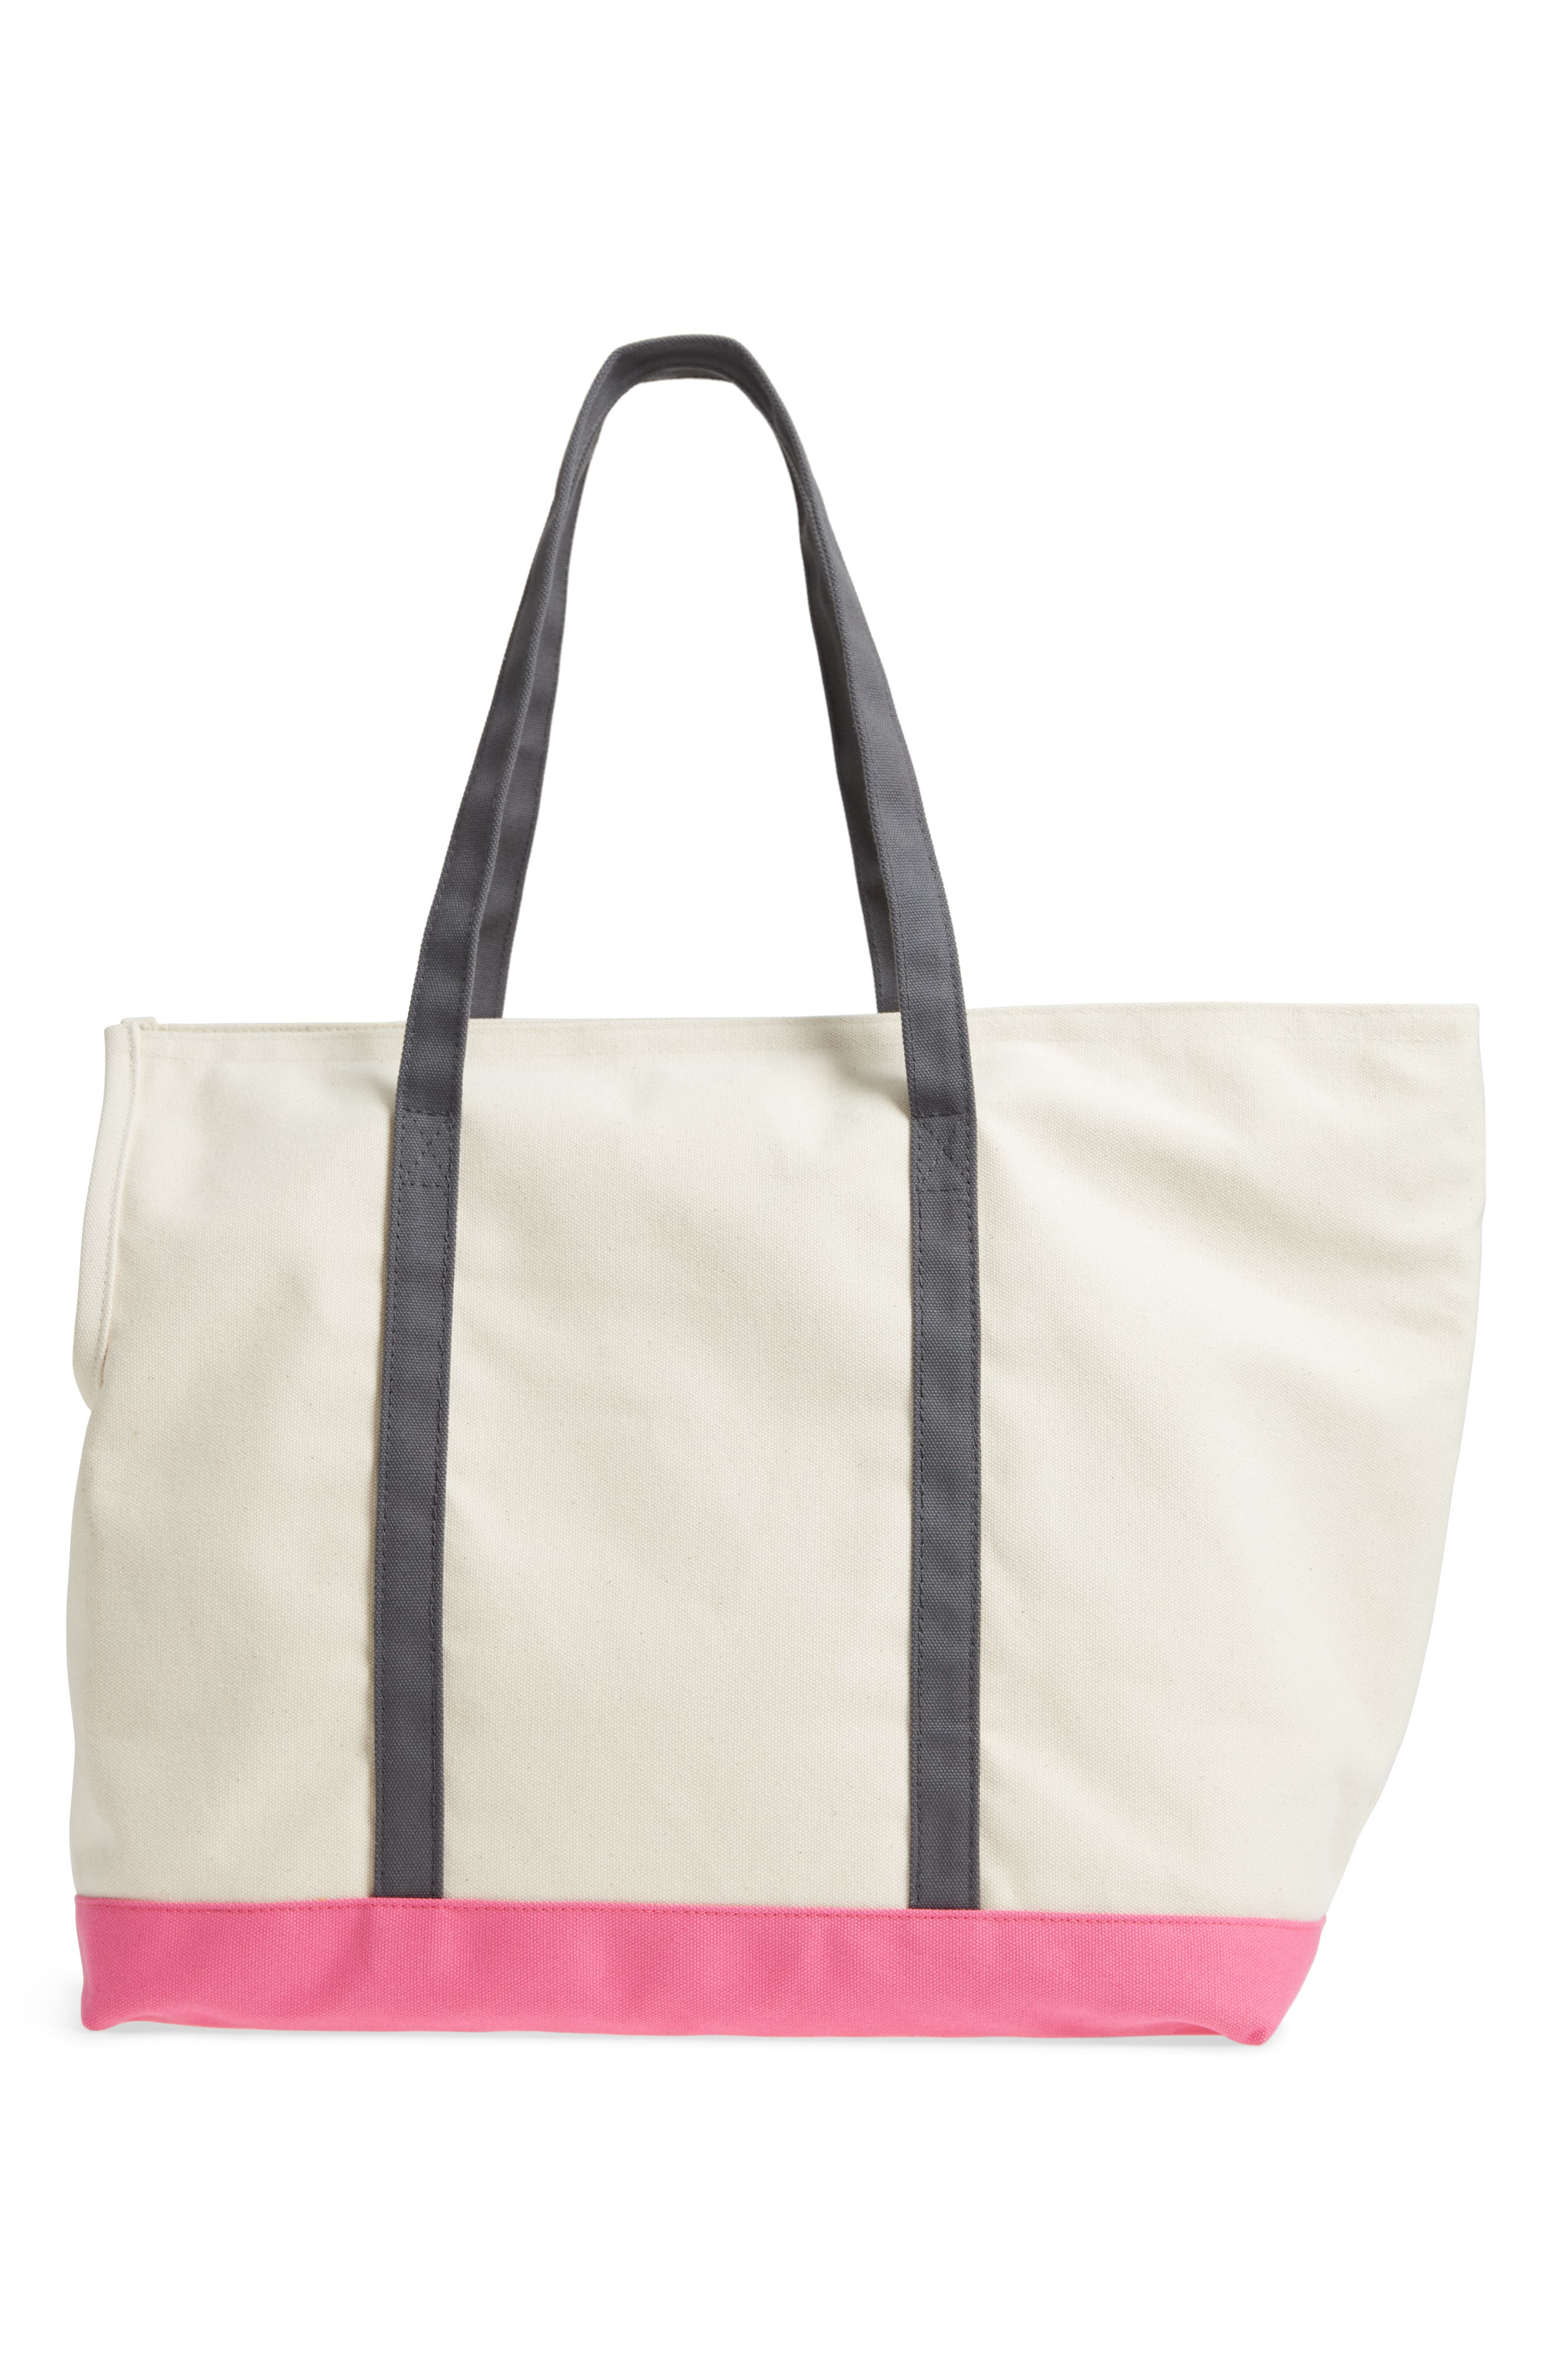 LOVETHYBEAST,                             Large Canvas Pet Tote,                             Alternate thumbnail 3, color,                             250